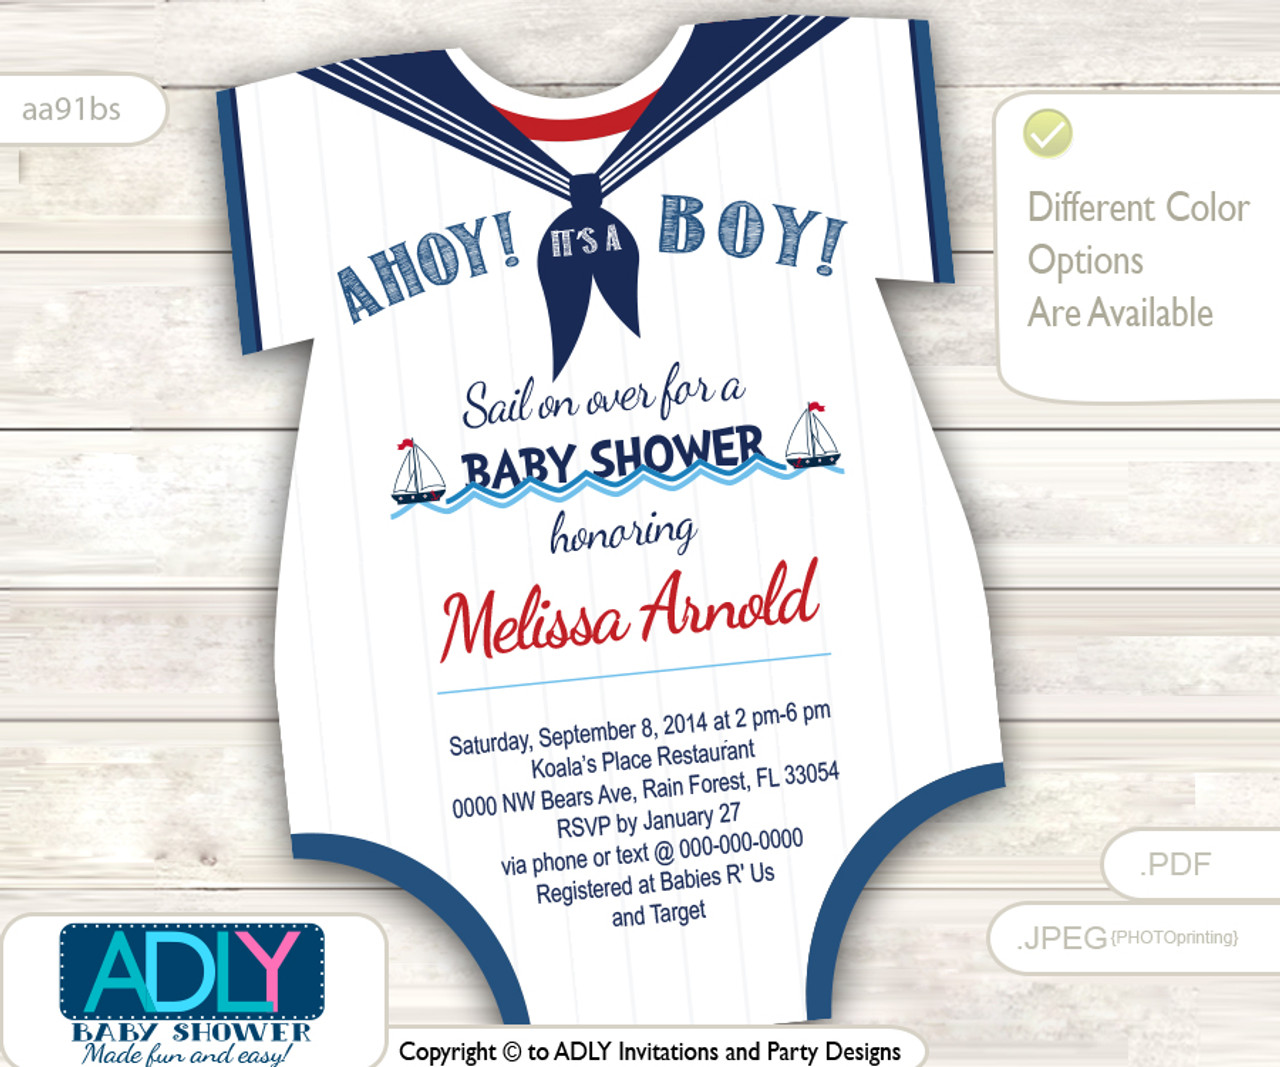 photo relating to Printable Onesie Baby Shower Invitations referred to as Nautical Onesies Little one Shower Invitation for a Boy or girl Boy inside Army Blue, Purple, White shades. Small Sailor shower invitation,sail upon in excess of